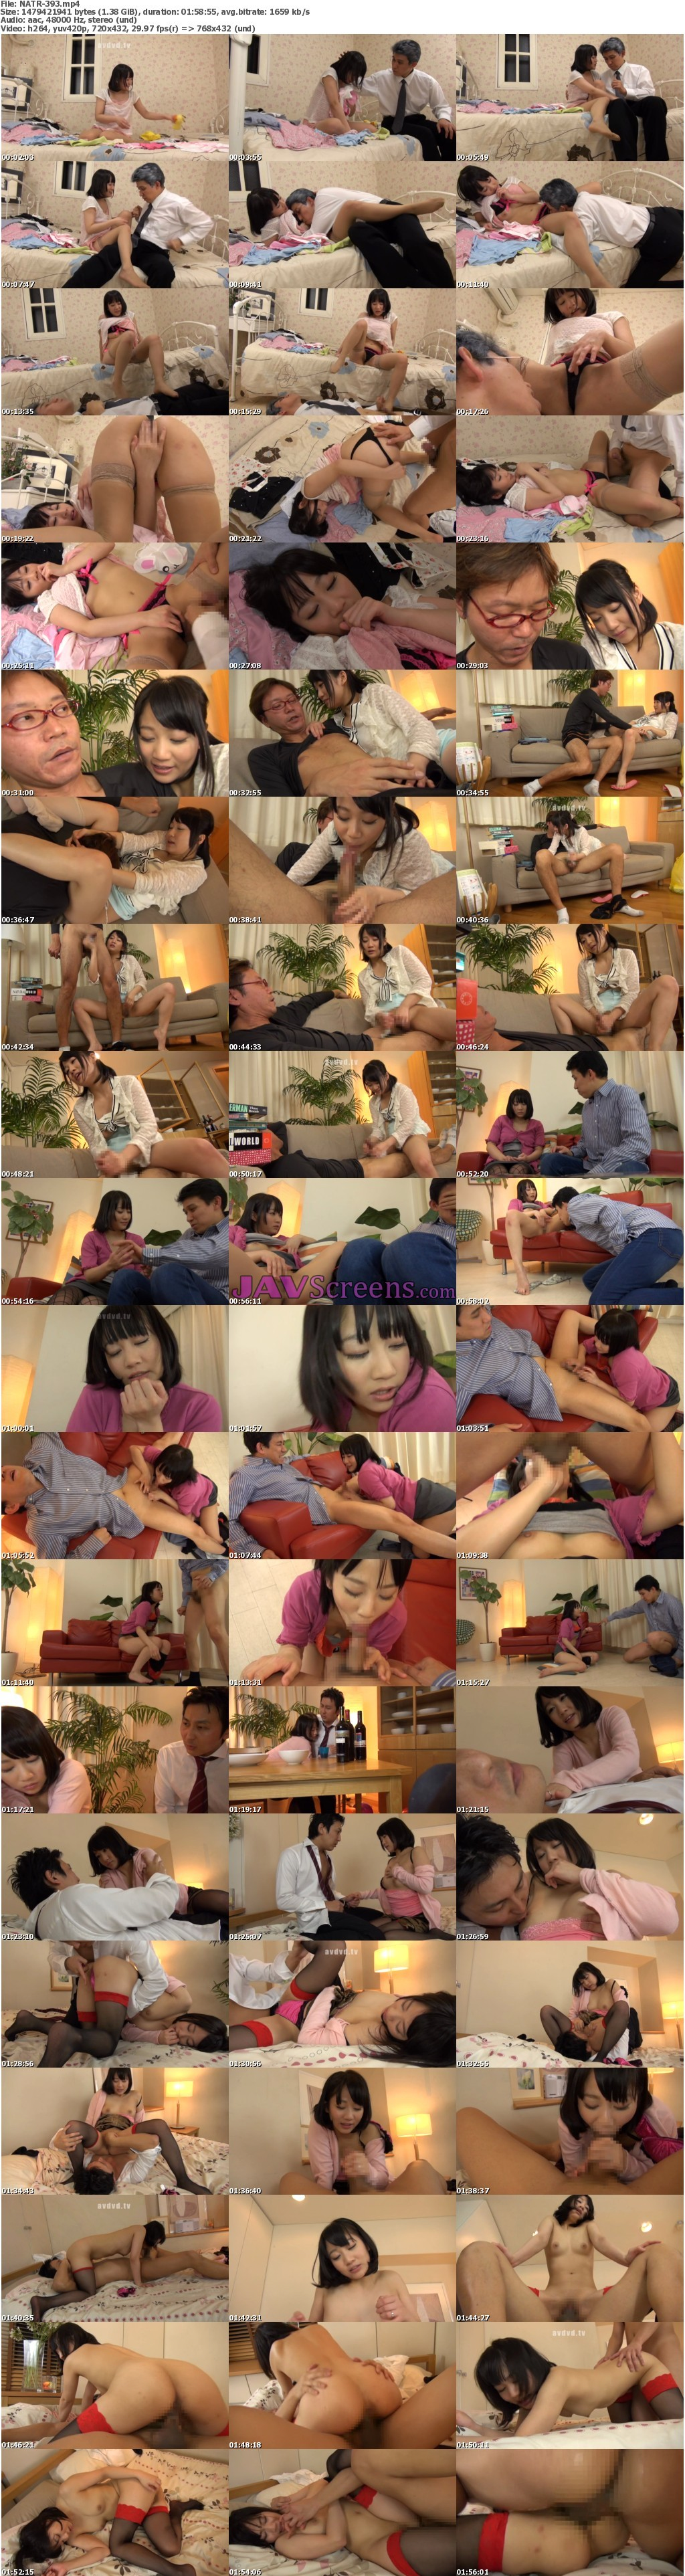 NATR-393.jpg - JAV Screenshot